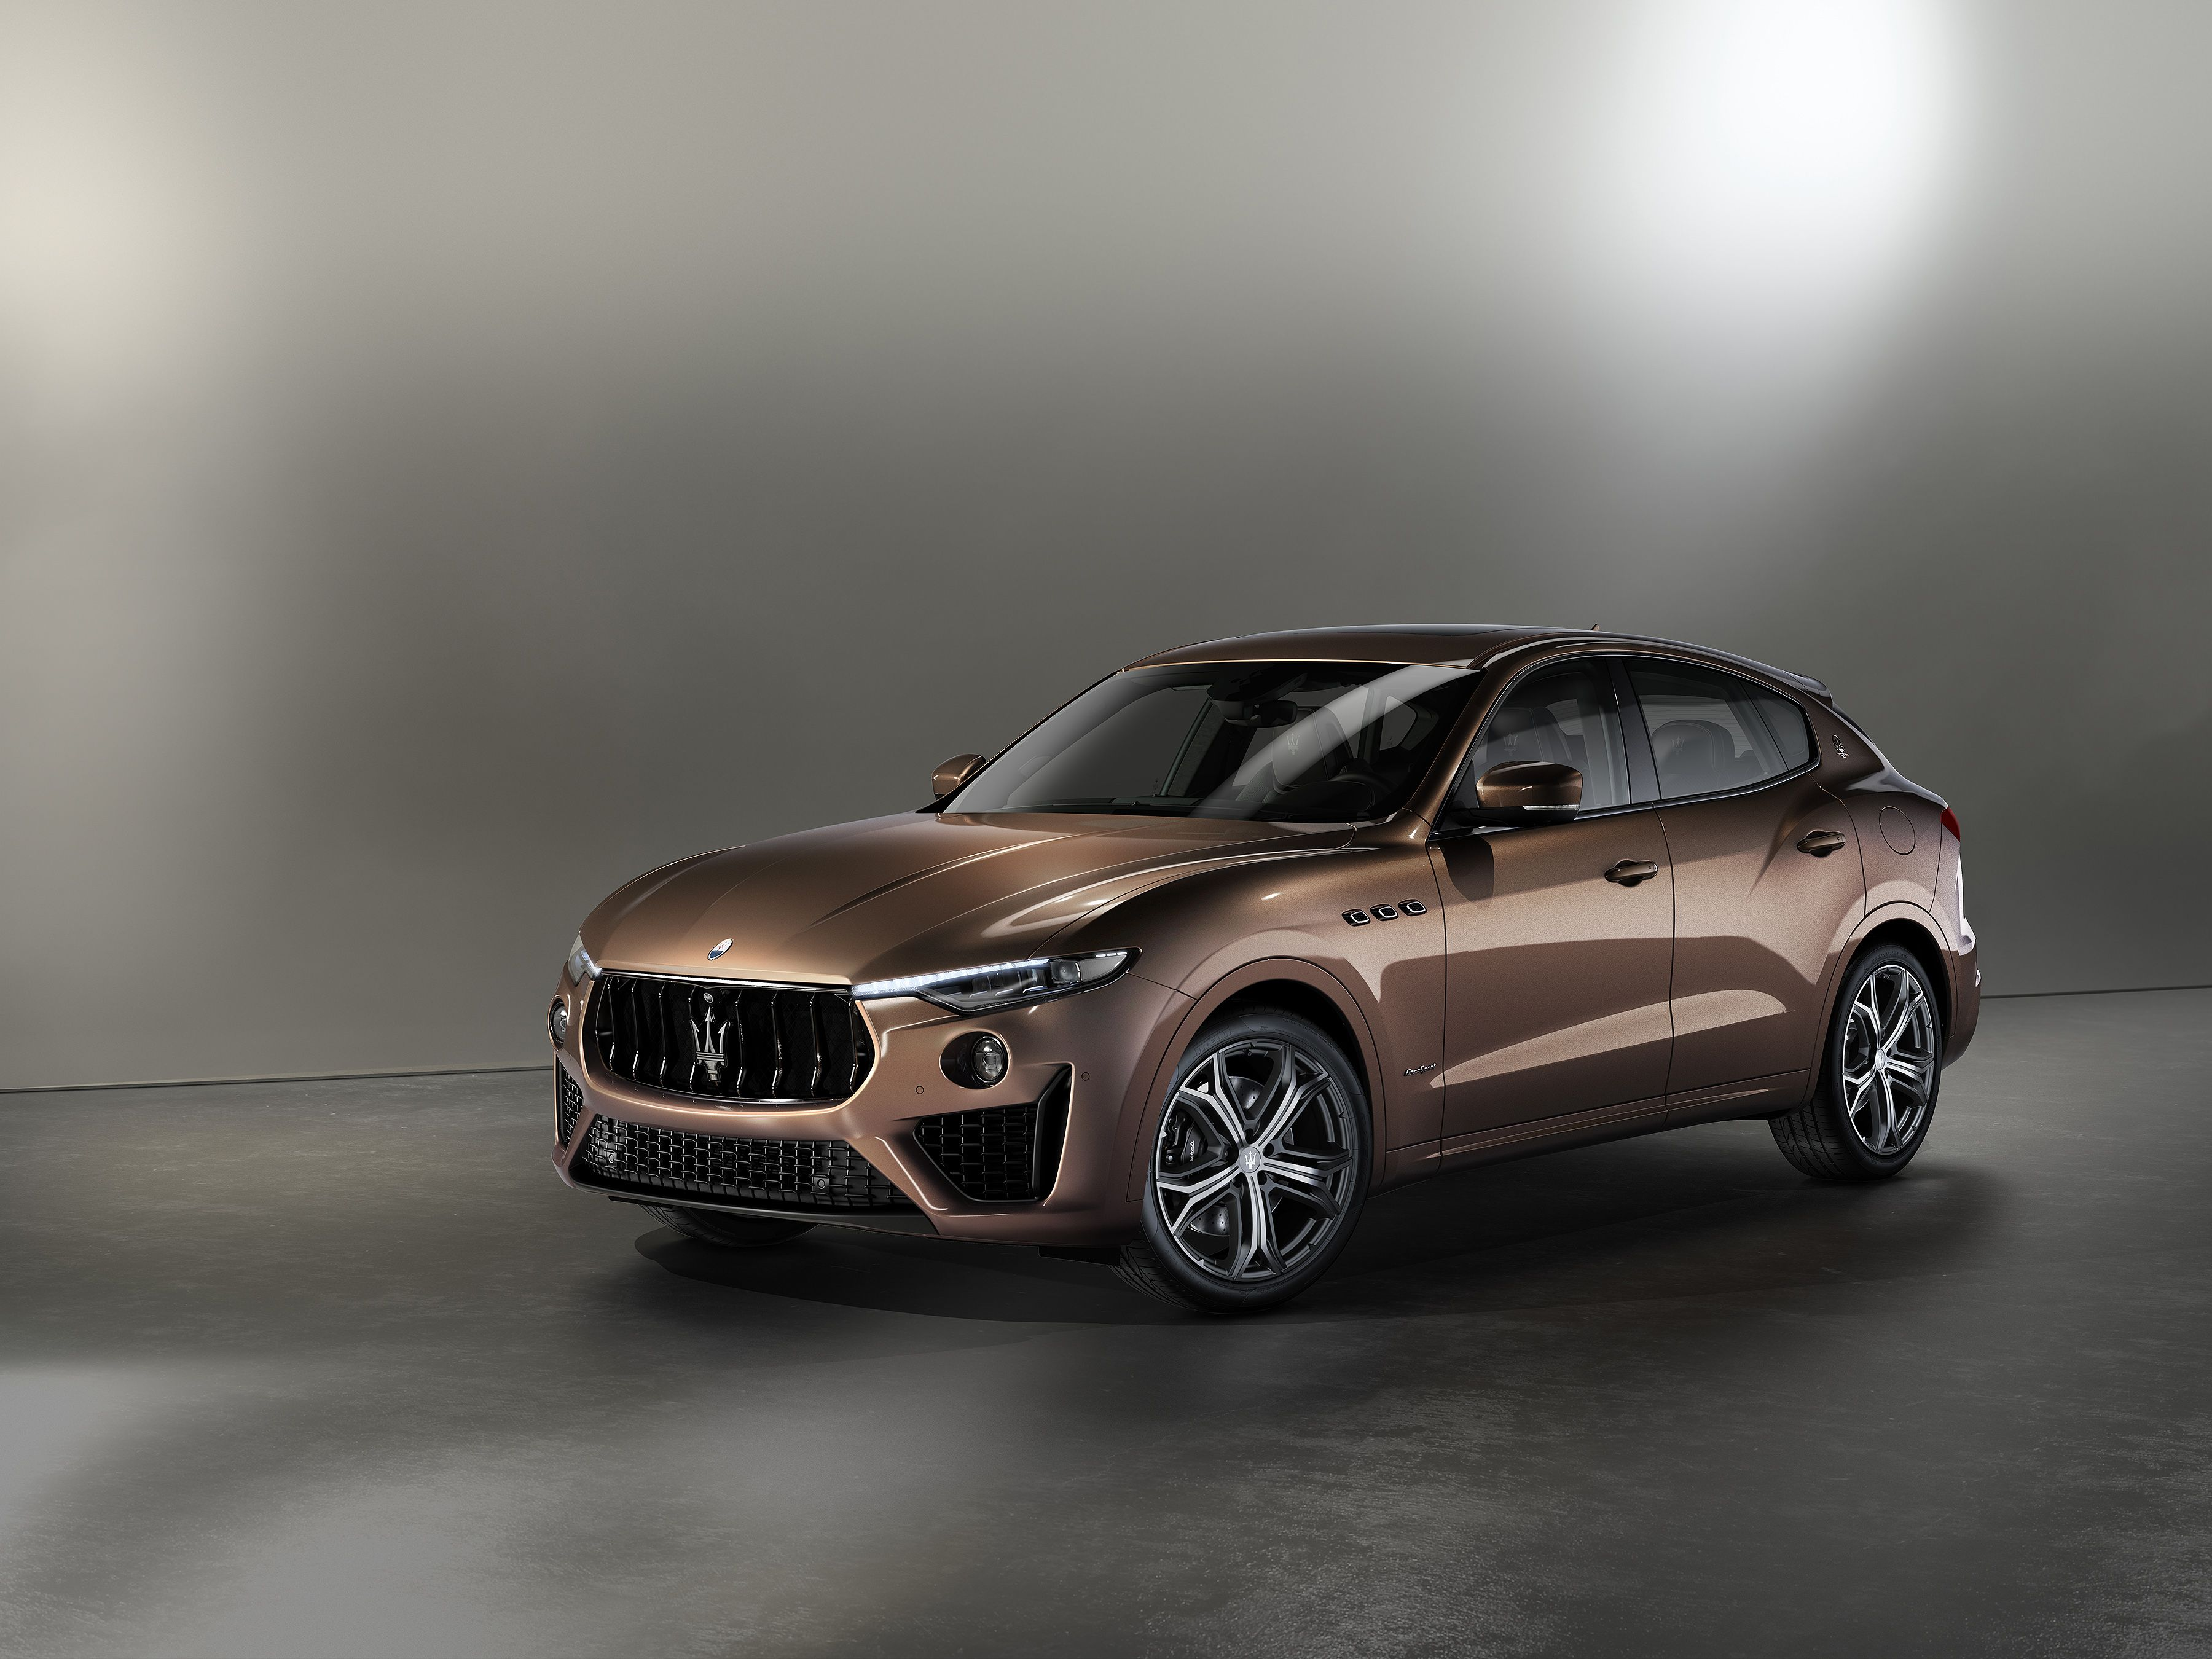 2020 Maserati Levante Review Pricing And Specs